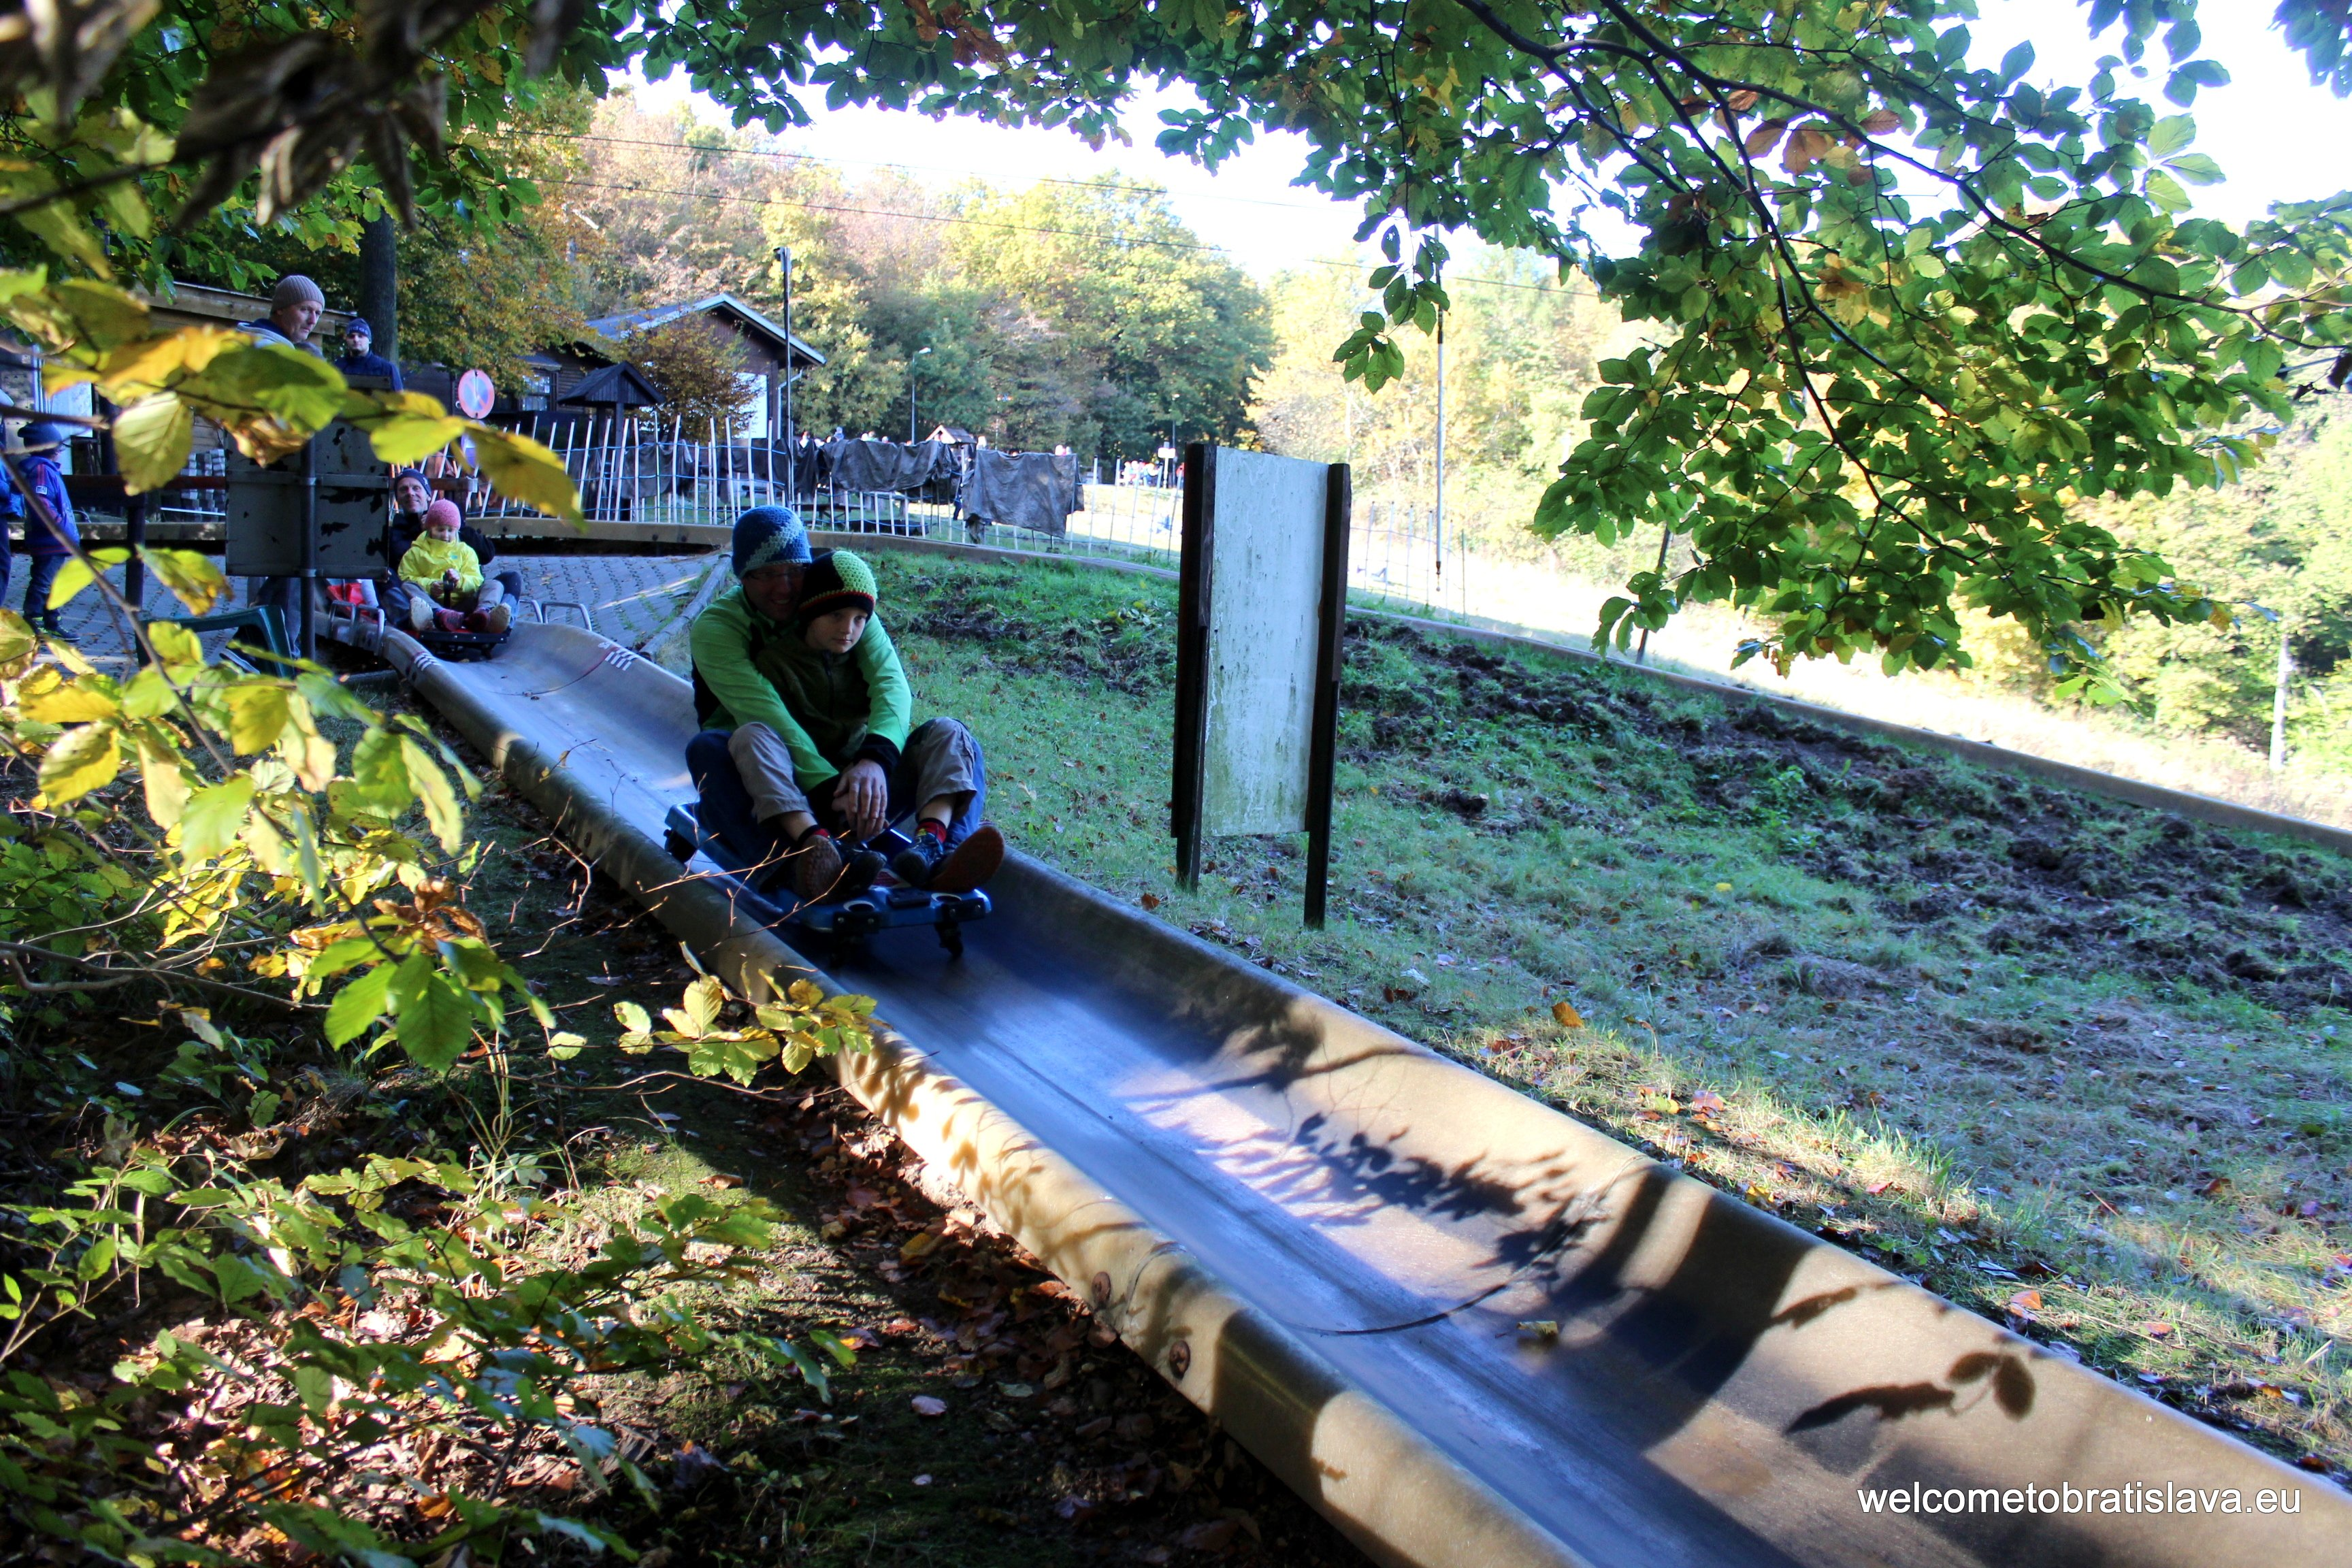 Outdoor places for kids in Bratislava - bobsled Koliba